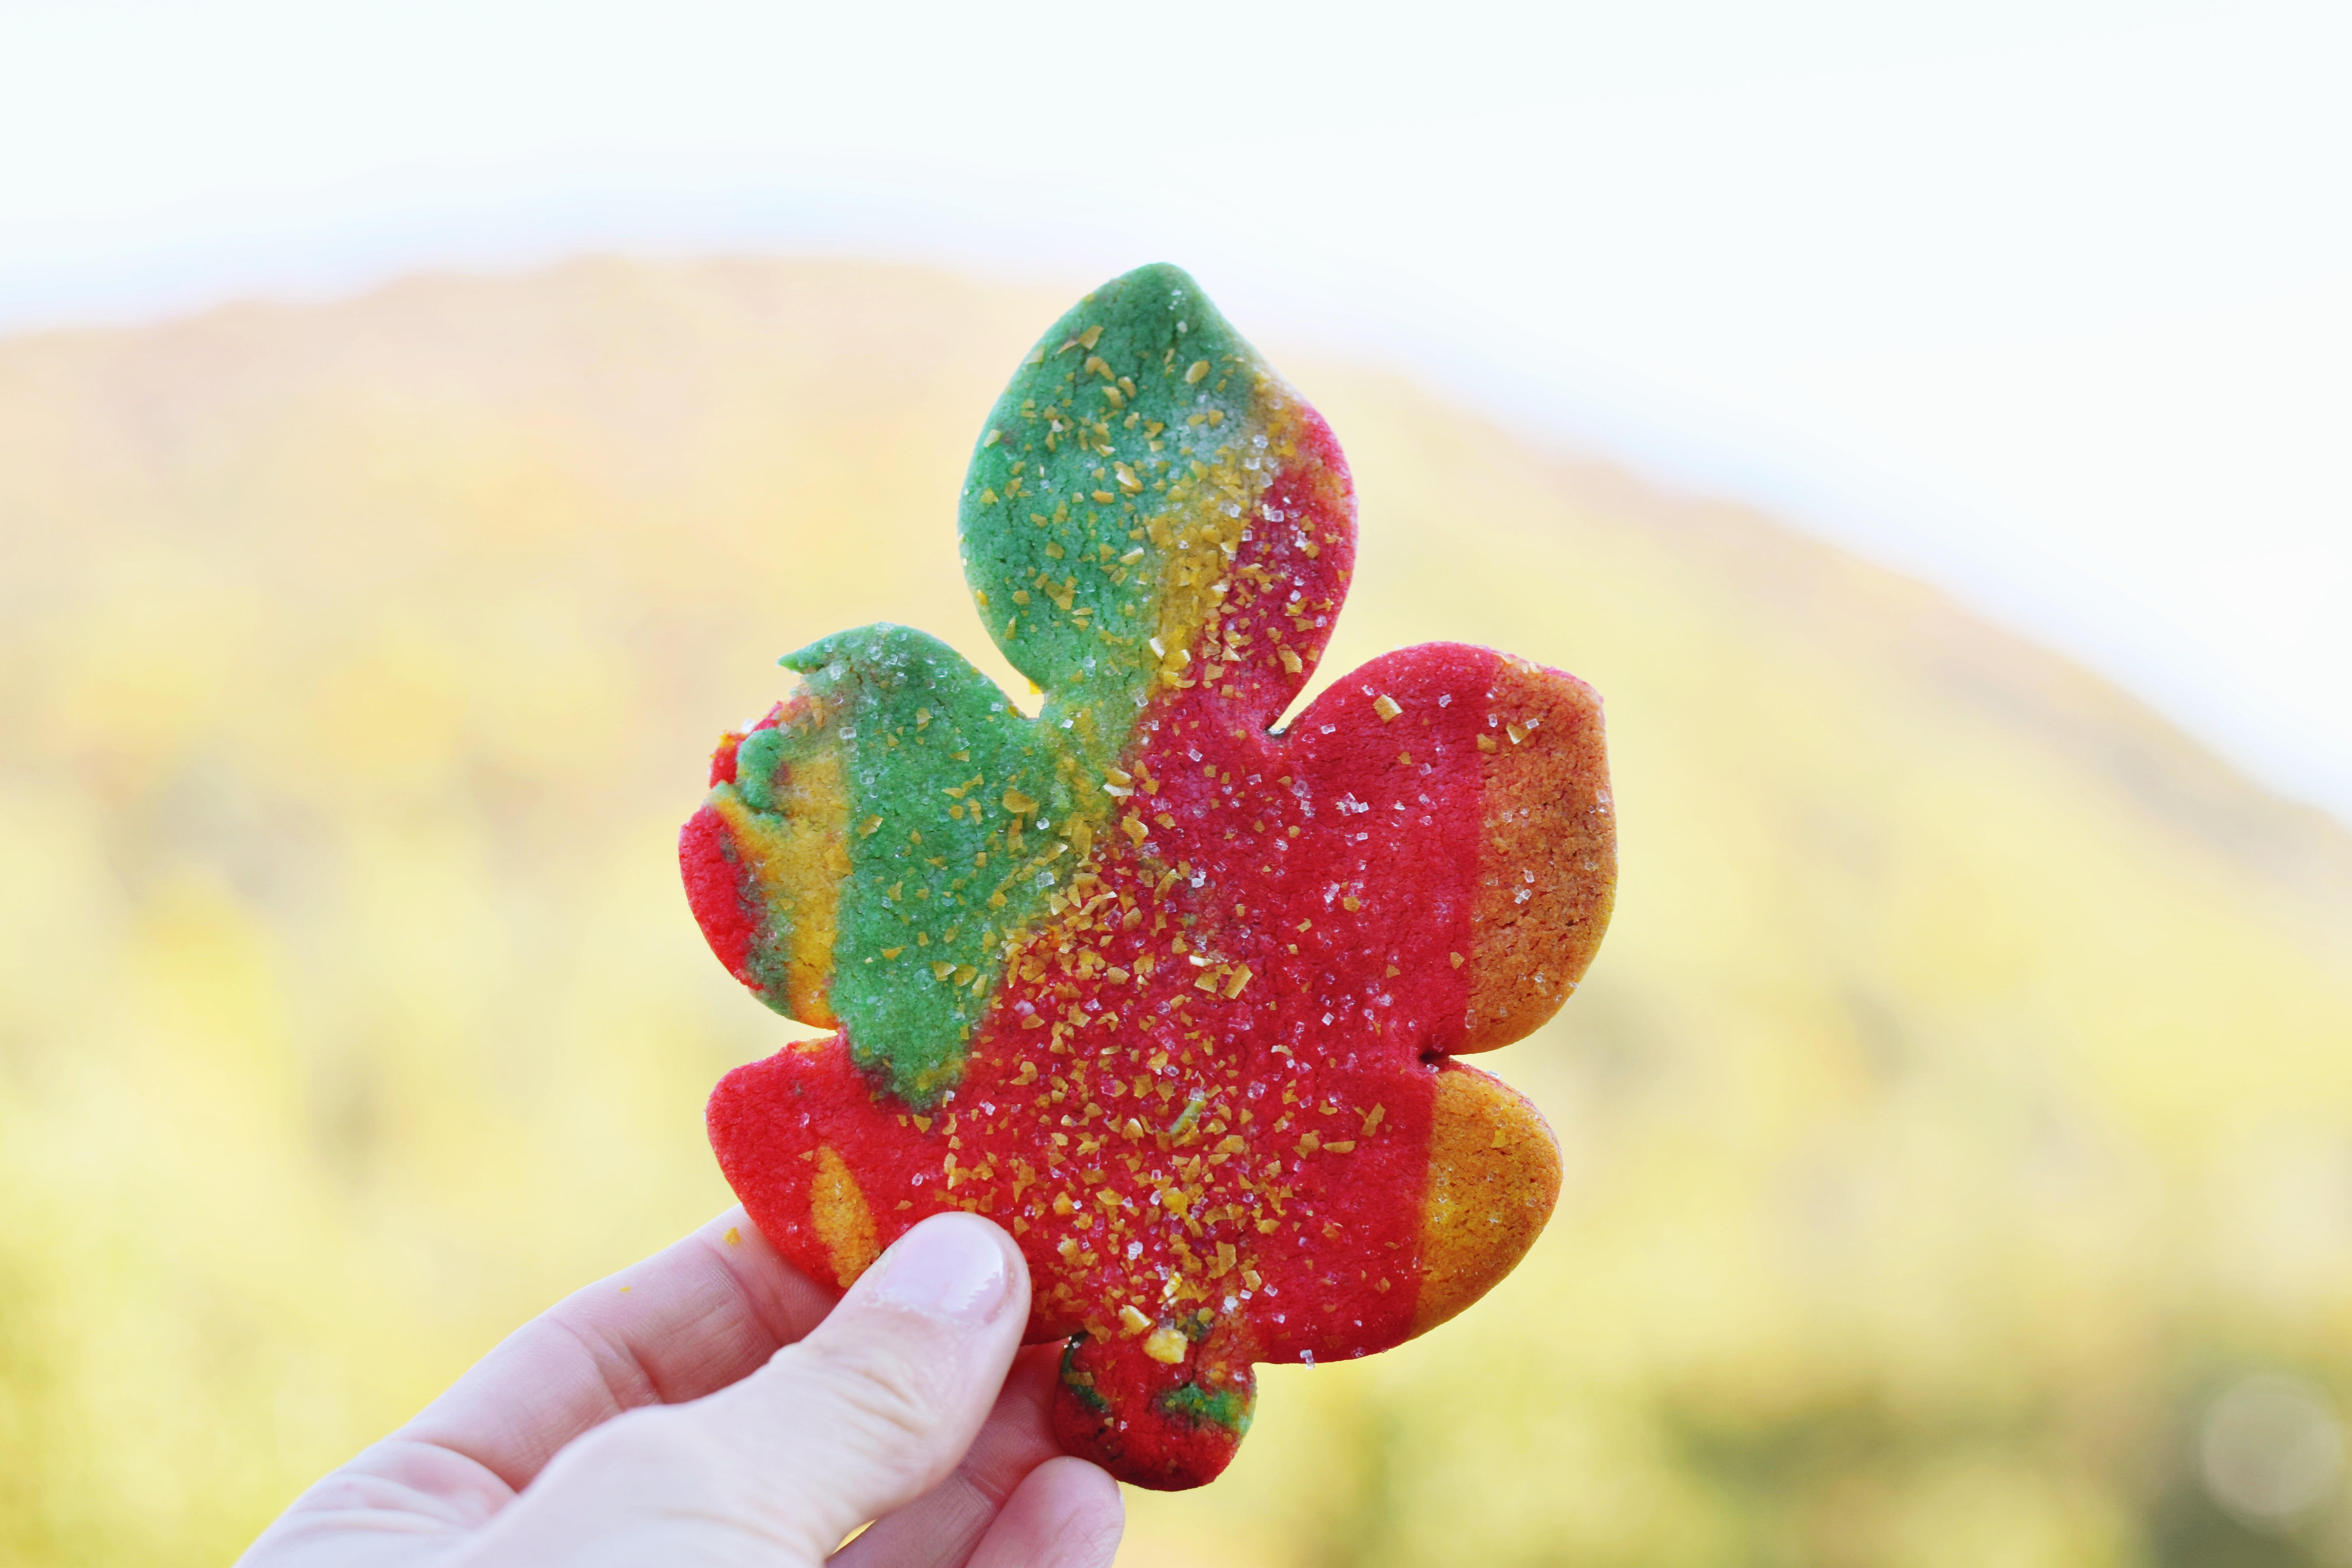 Fun Tie-Dye Fall Leaf Cookies that are perfect for any festive fall occasion! - Fall Cookie Recipe - Maple Leaf Cookies - Easy Fall Dessert Recipe - Easy Cookies For Fall - Communikait by Kait Hanson